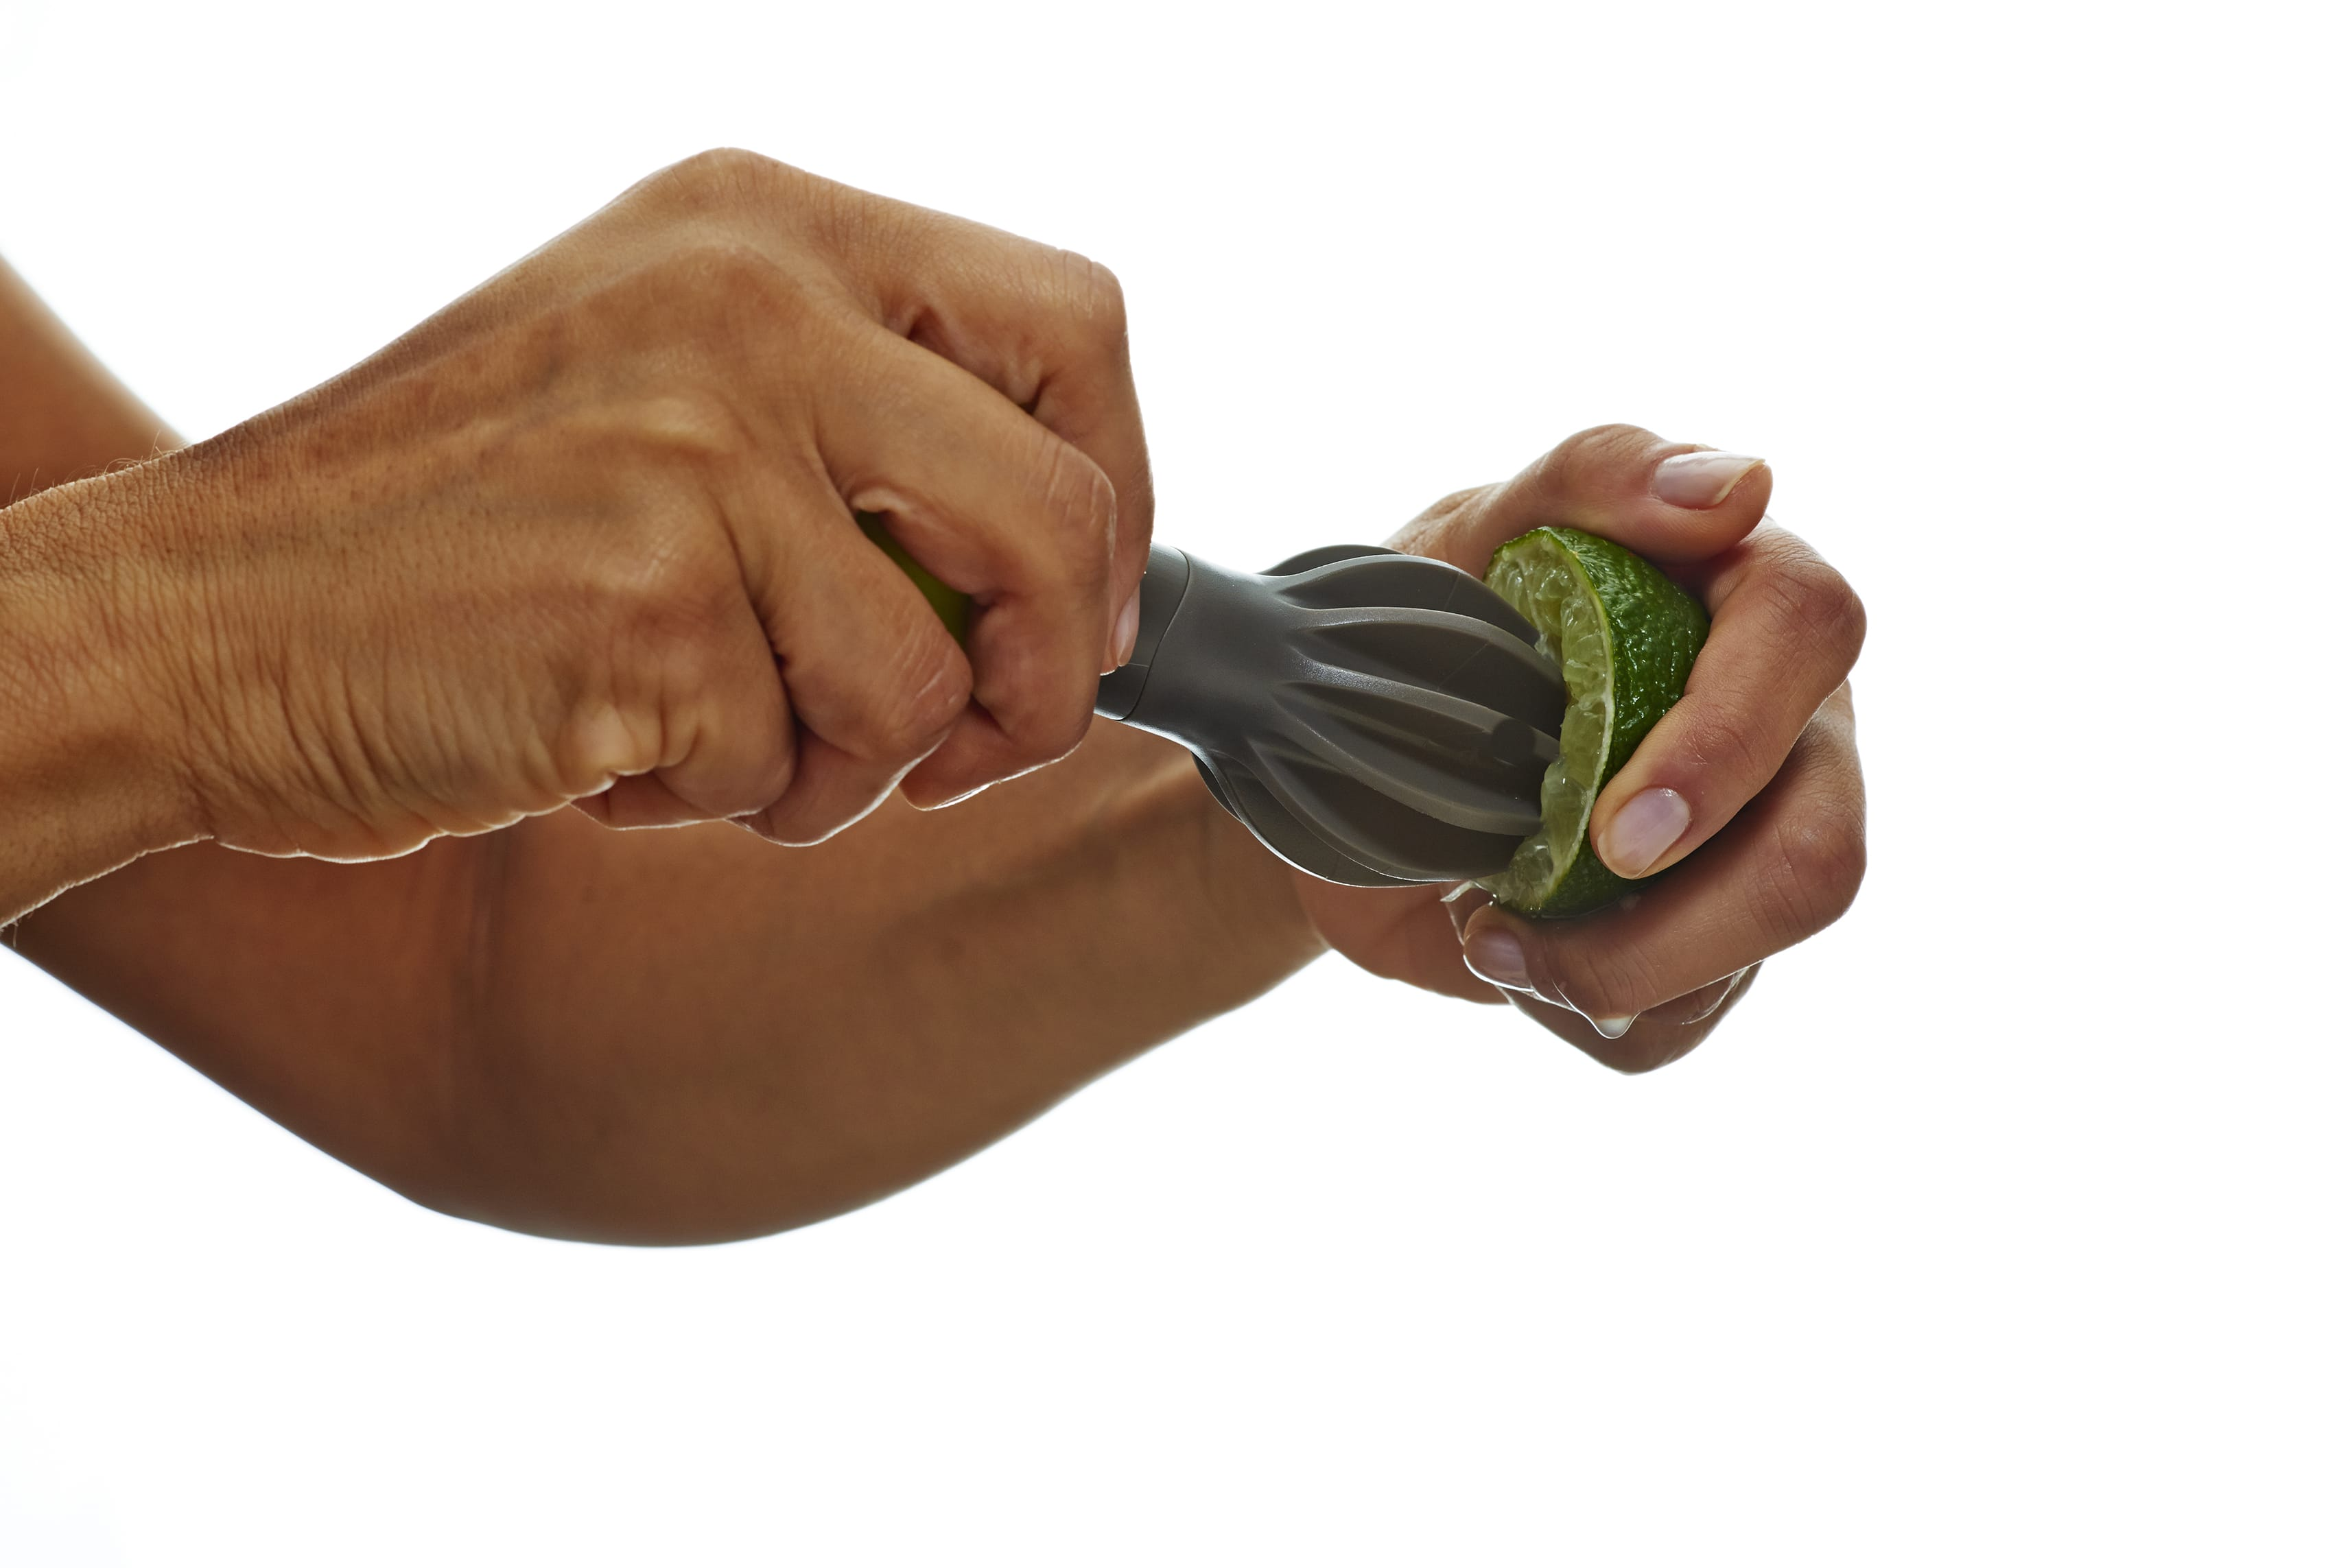 Squeeze Demo in Olive